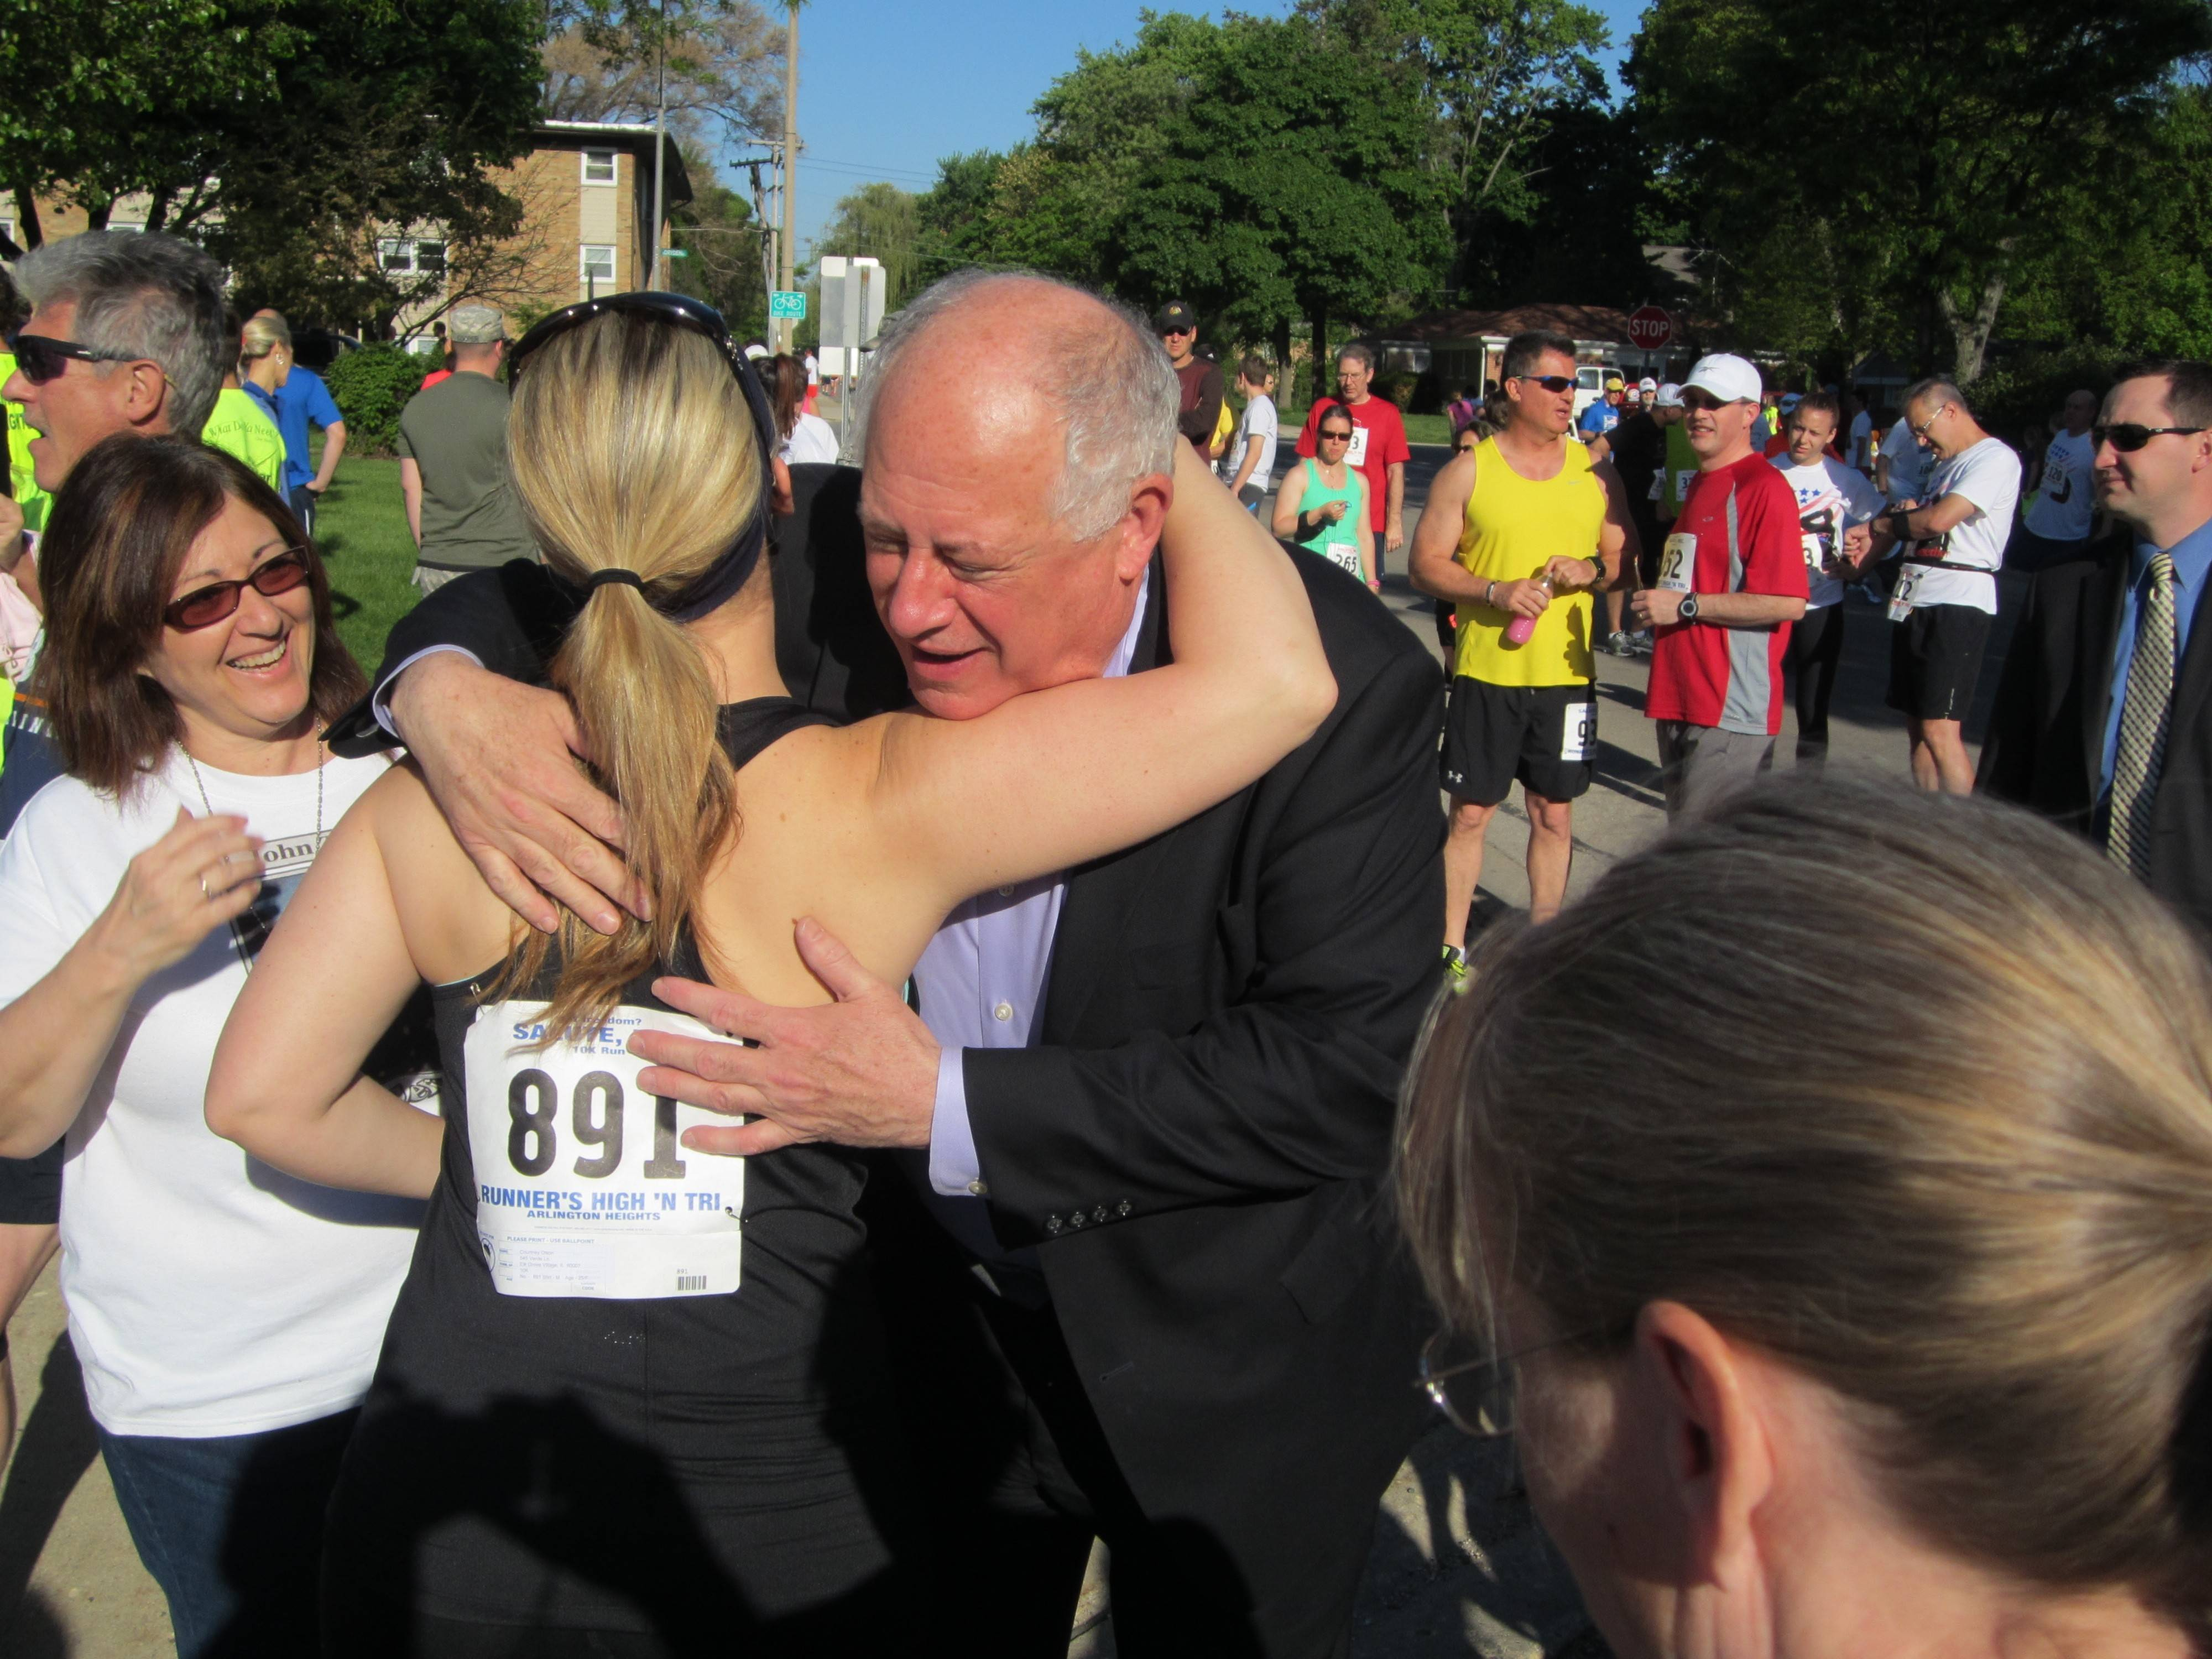 Gov. Pat Quinn hugs an athlete before the start of the 11th annual Salute Inc. Got Freedom? run/walk Sunday in Arlington Heights. The event raises money for military personnel and their families.